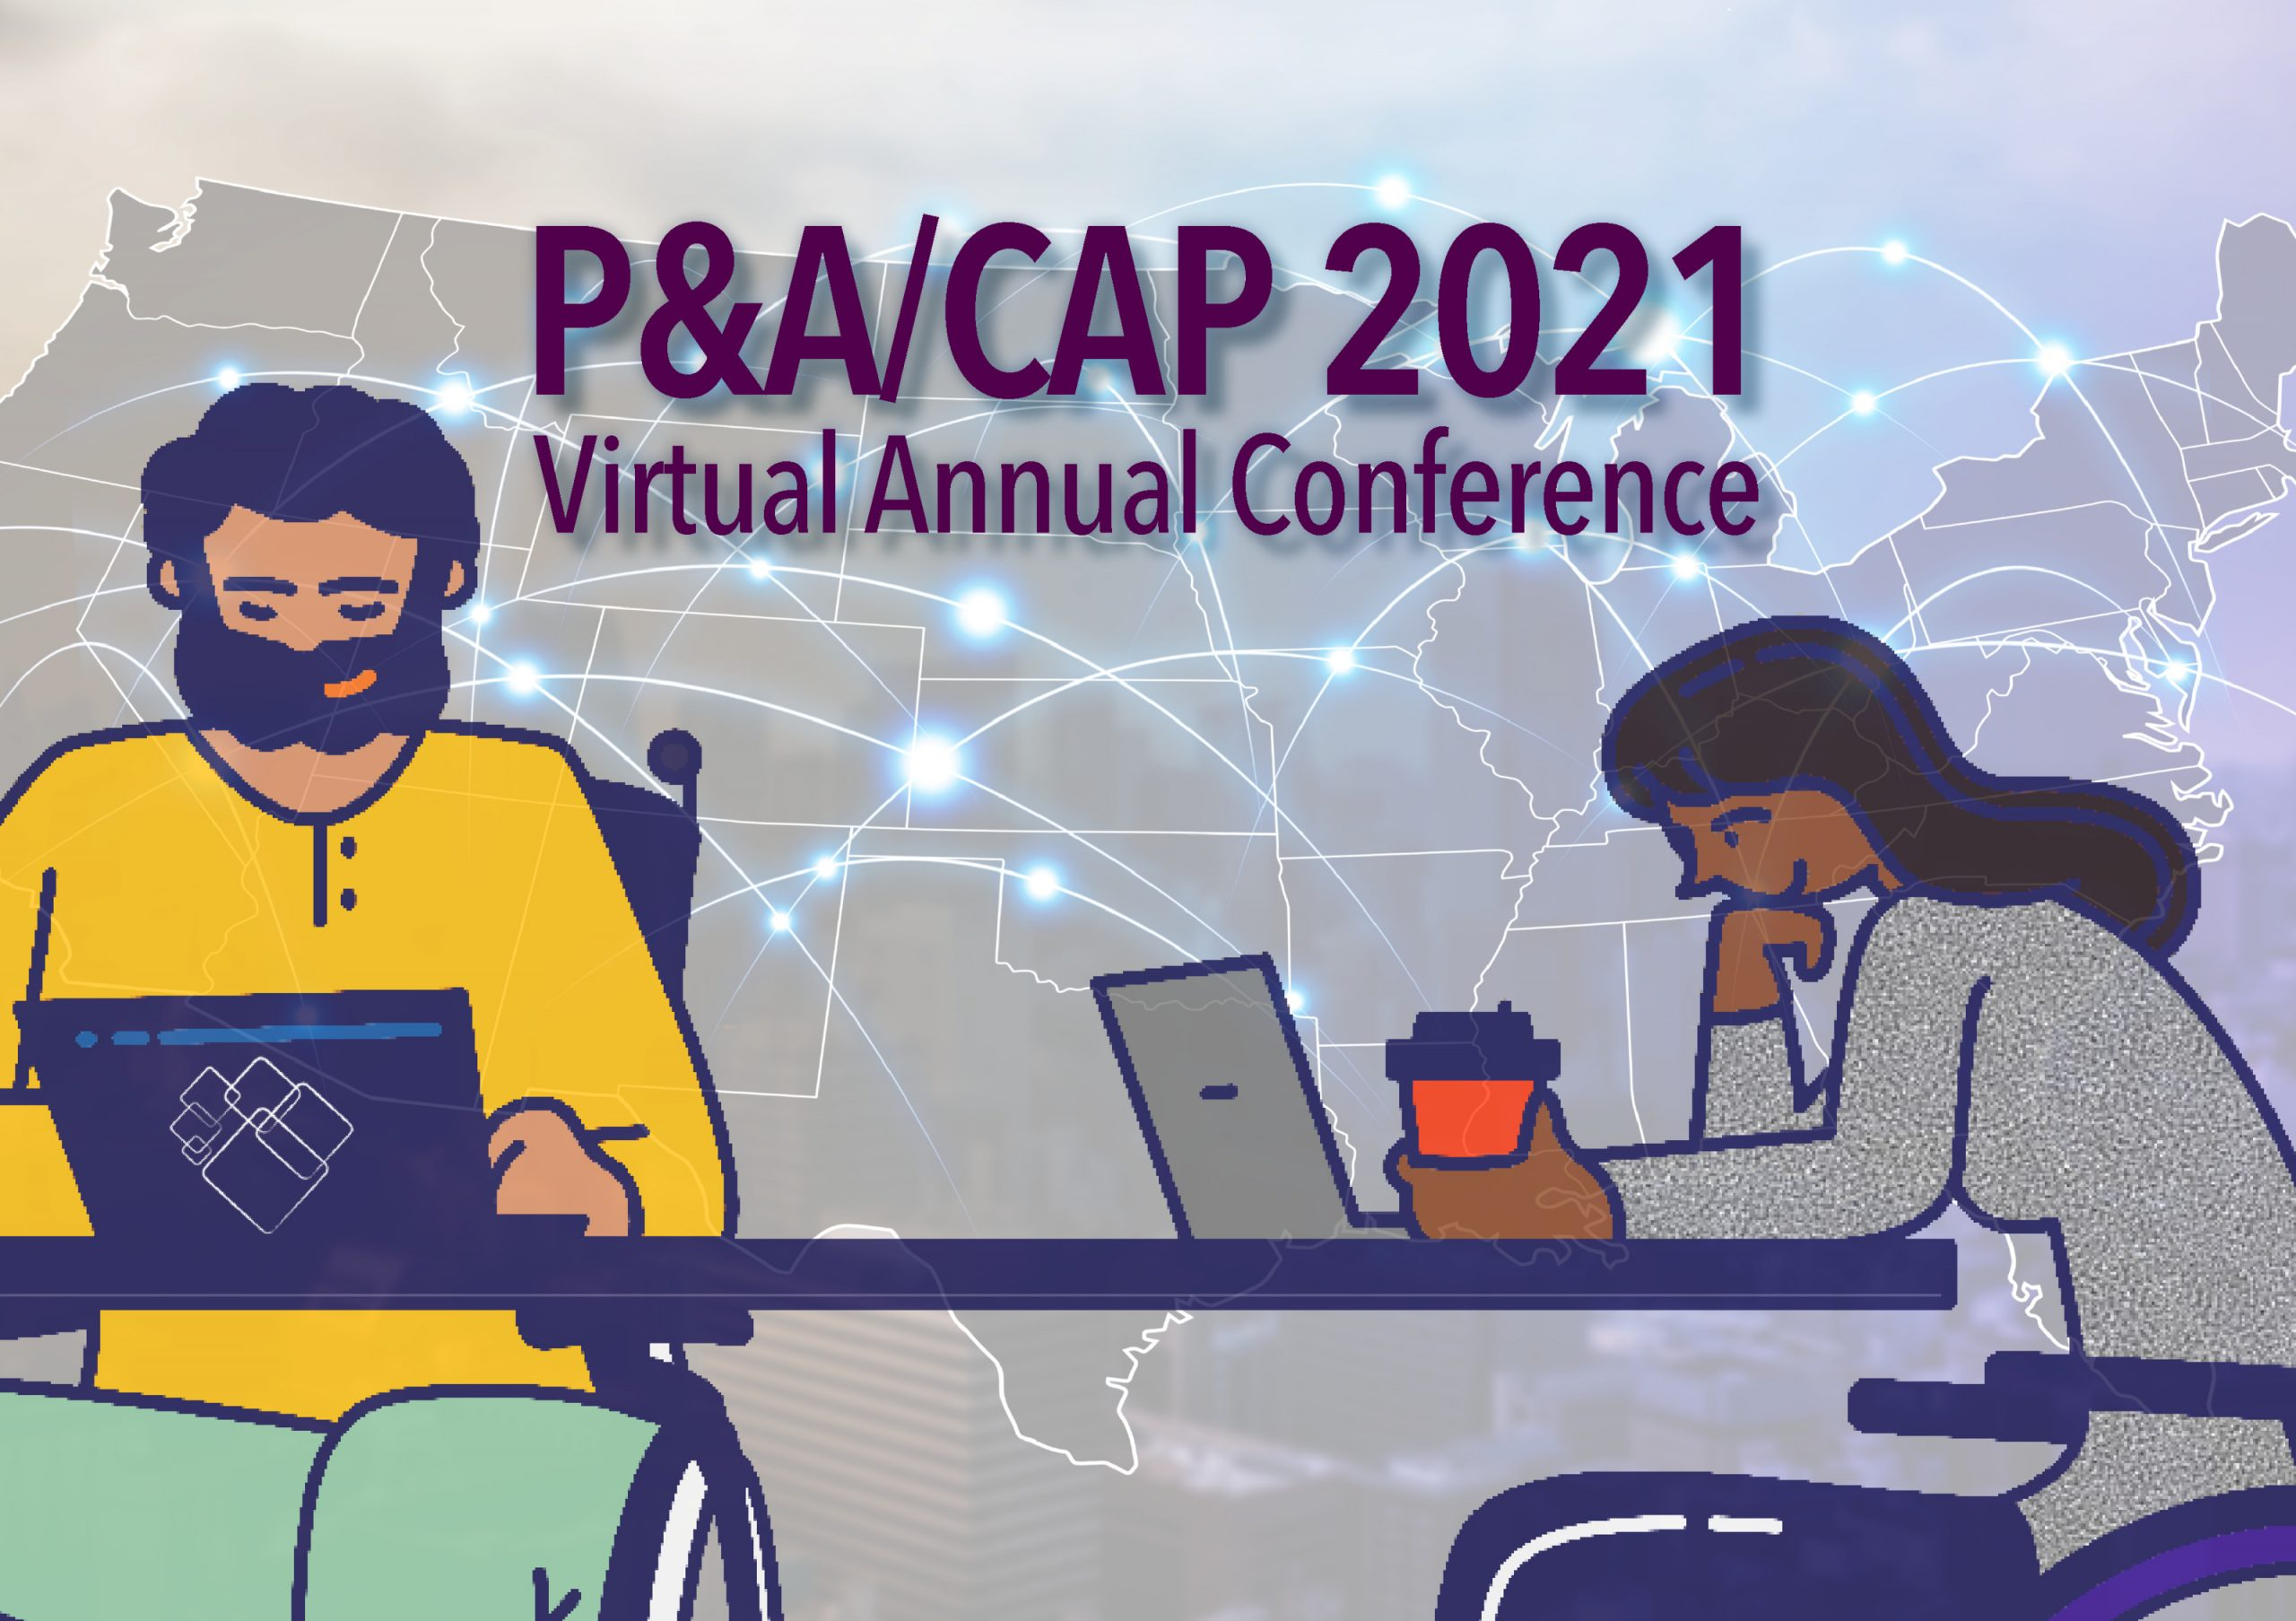 DNRN – National Disability RIghts Organization – Protection and Advocacy/Client Assistance Programs – 2021 Virtual Annual Conference – May through June